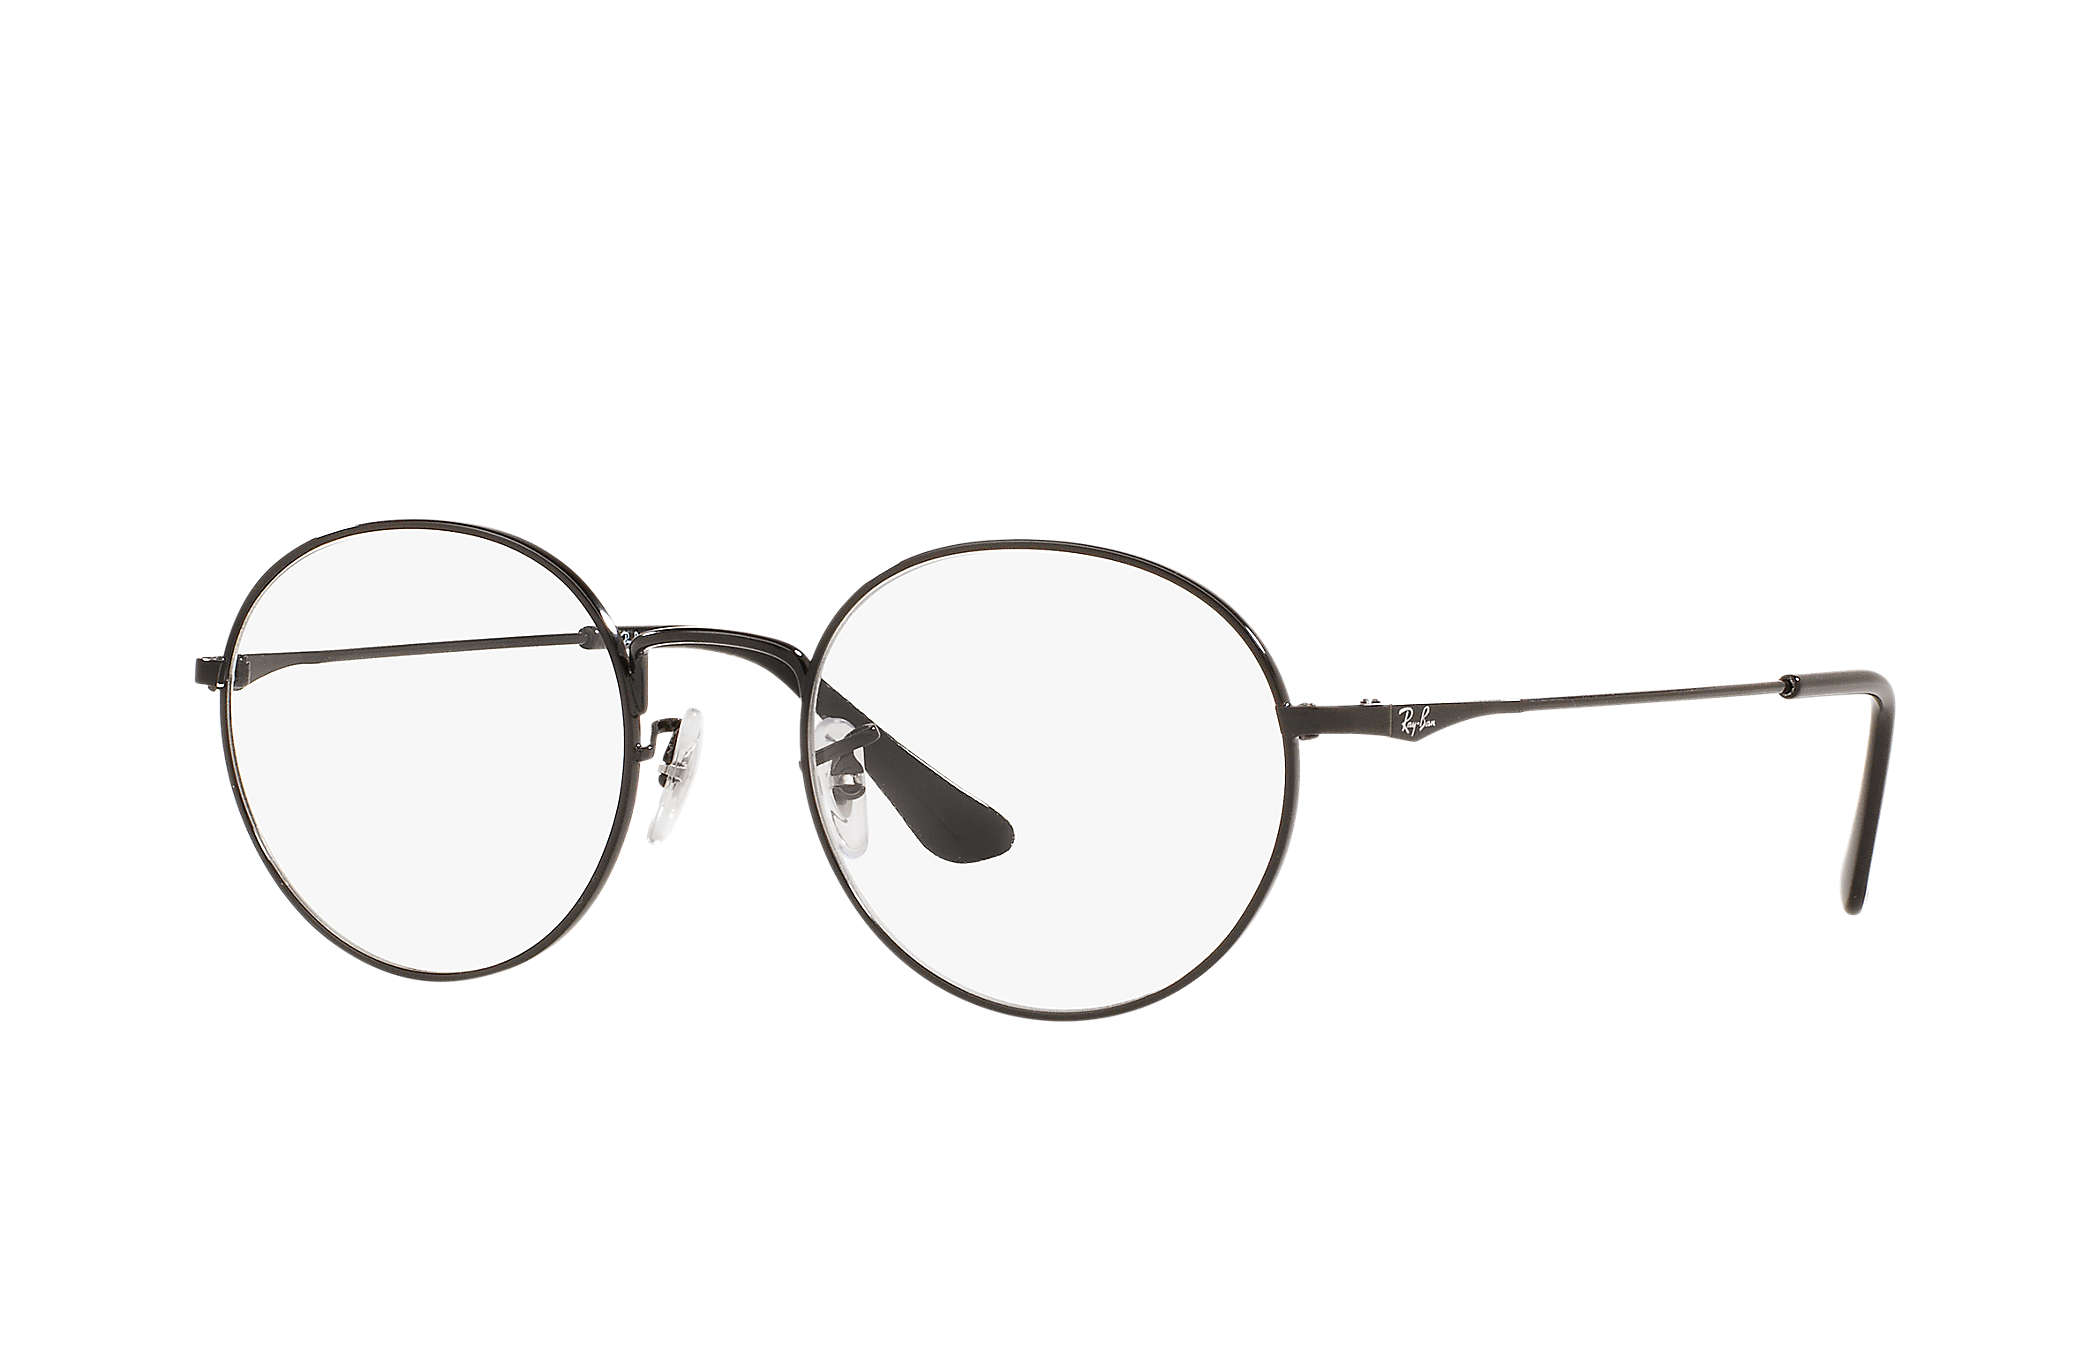 Ray-Ban RX6369D 2509 Black Round Metal EYEGLASSES